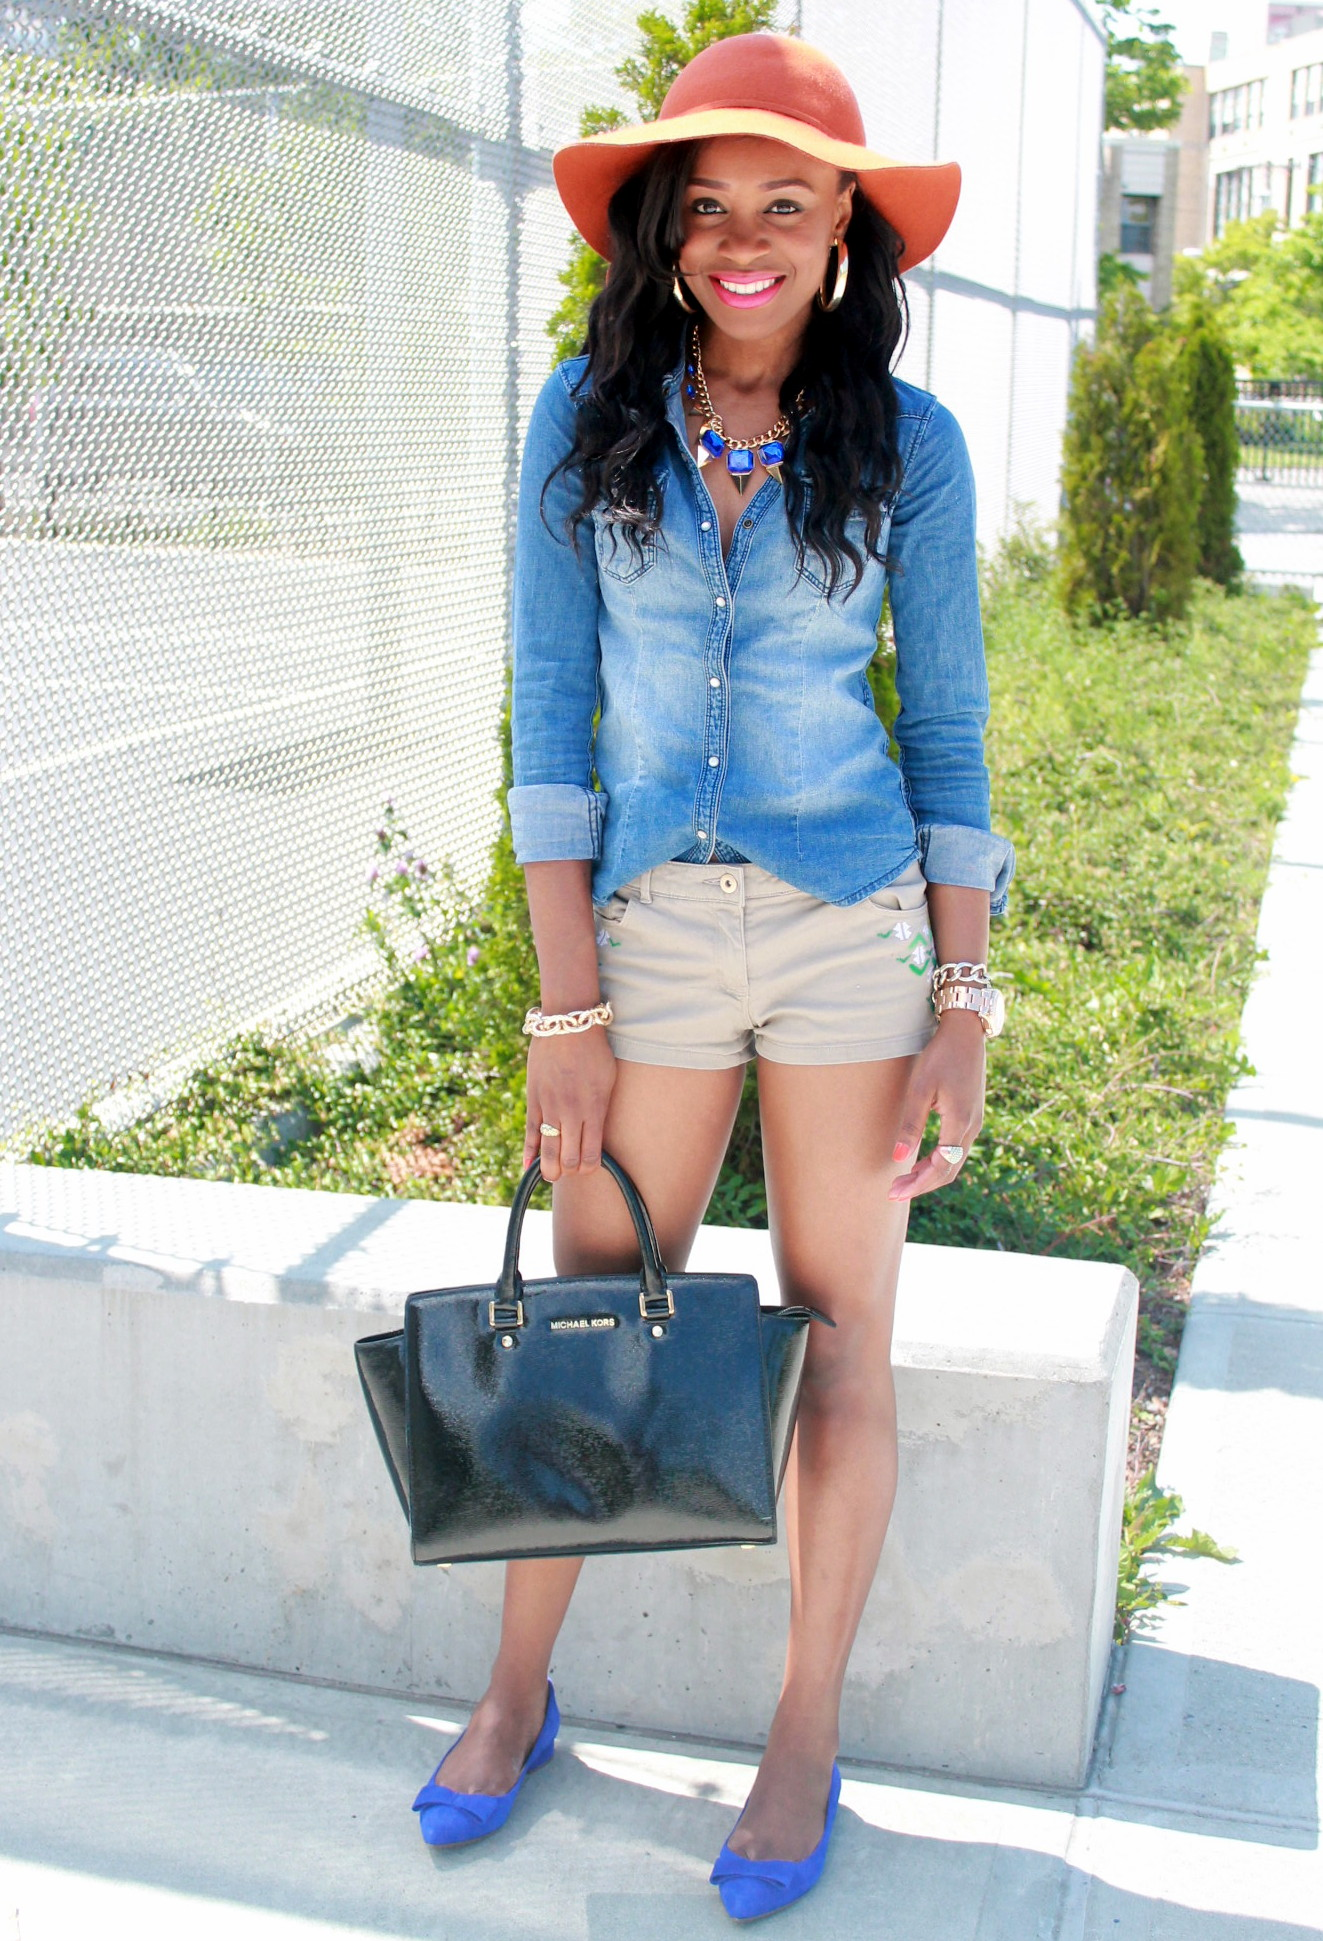 Chambray top + bow suede flats (10)